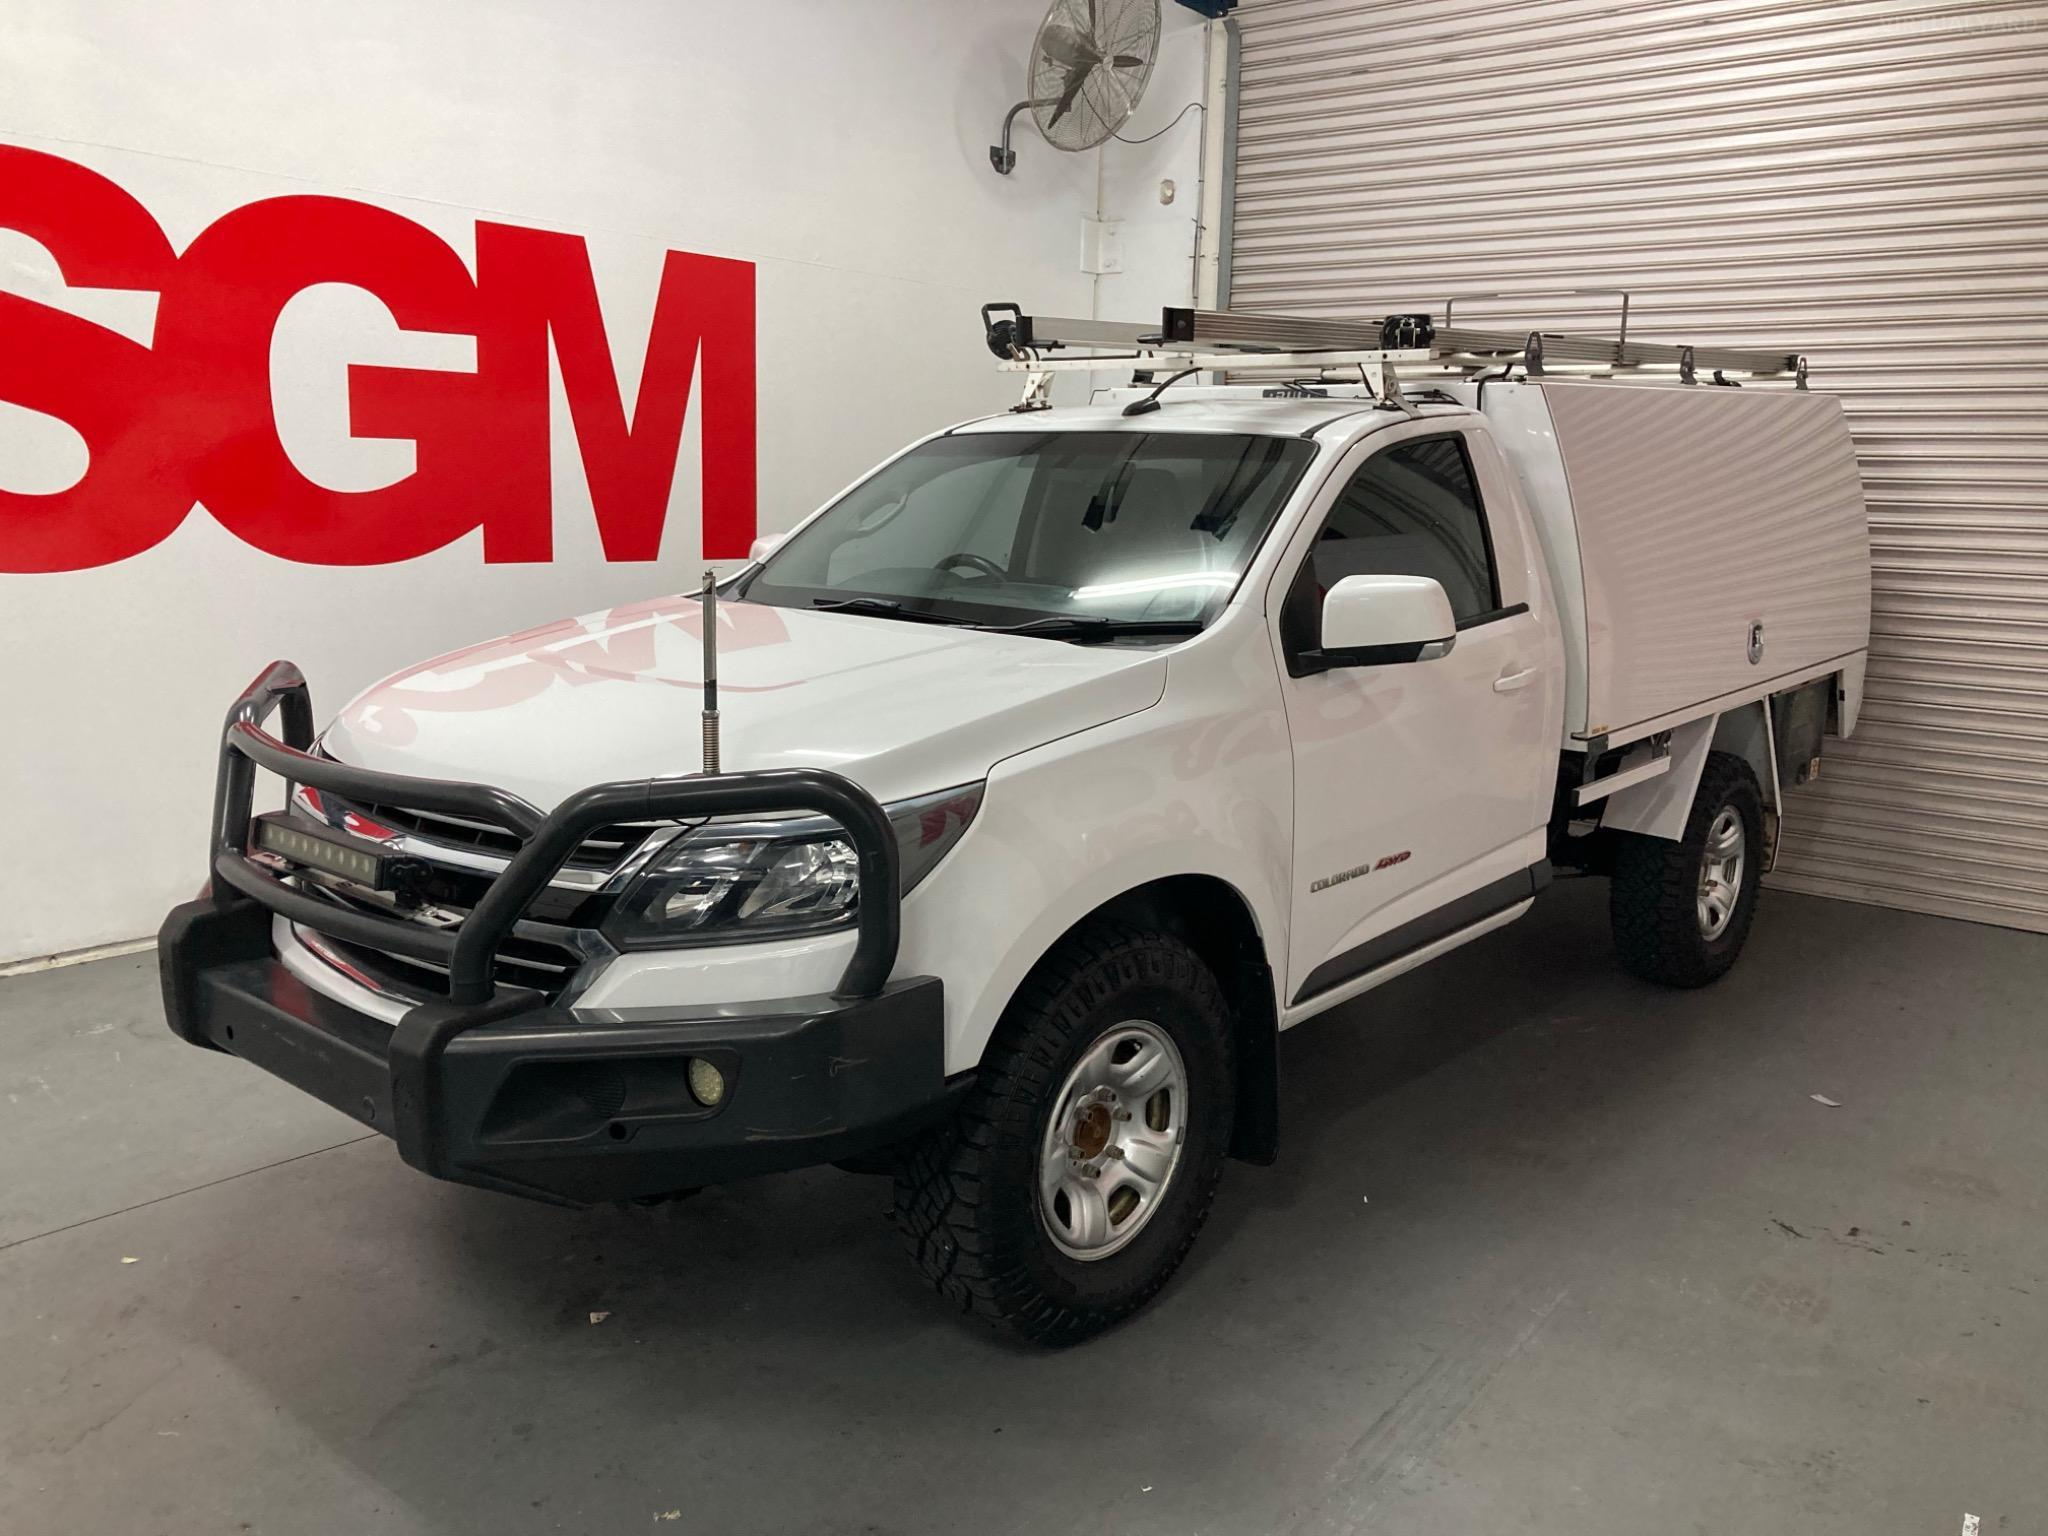 2016 Holden Colorado RG LS Cab Chassis Single Cab 2dr Spts Auto 6sp 4x4 2.8DT Picture 8